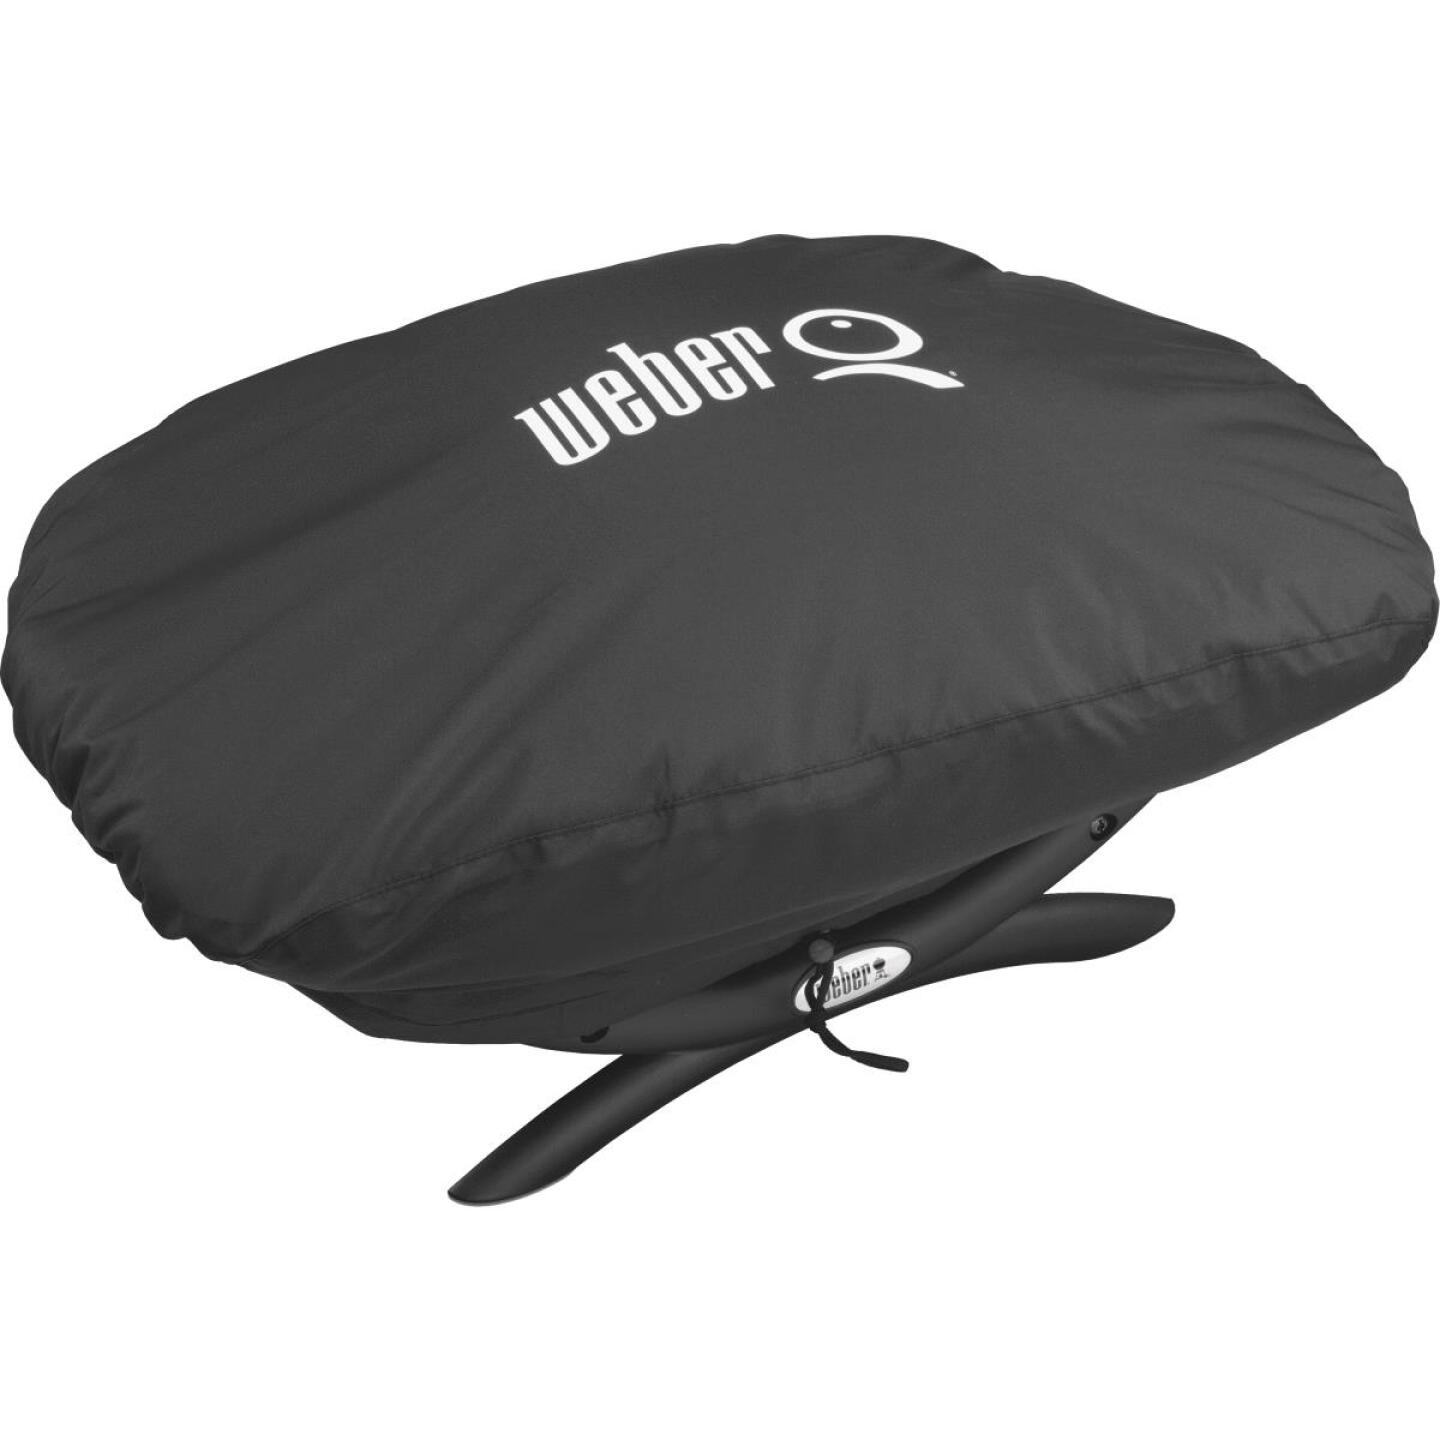 Weber Q 100/1000 27 In. Black Vinyl Grill Cover Image 1